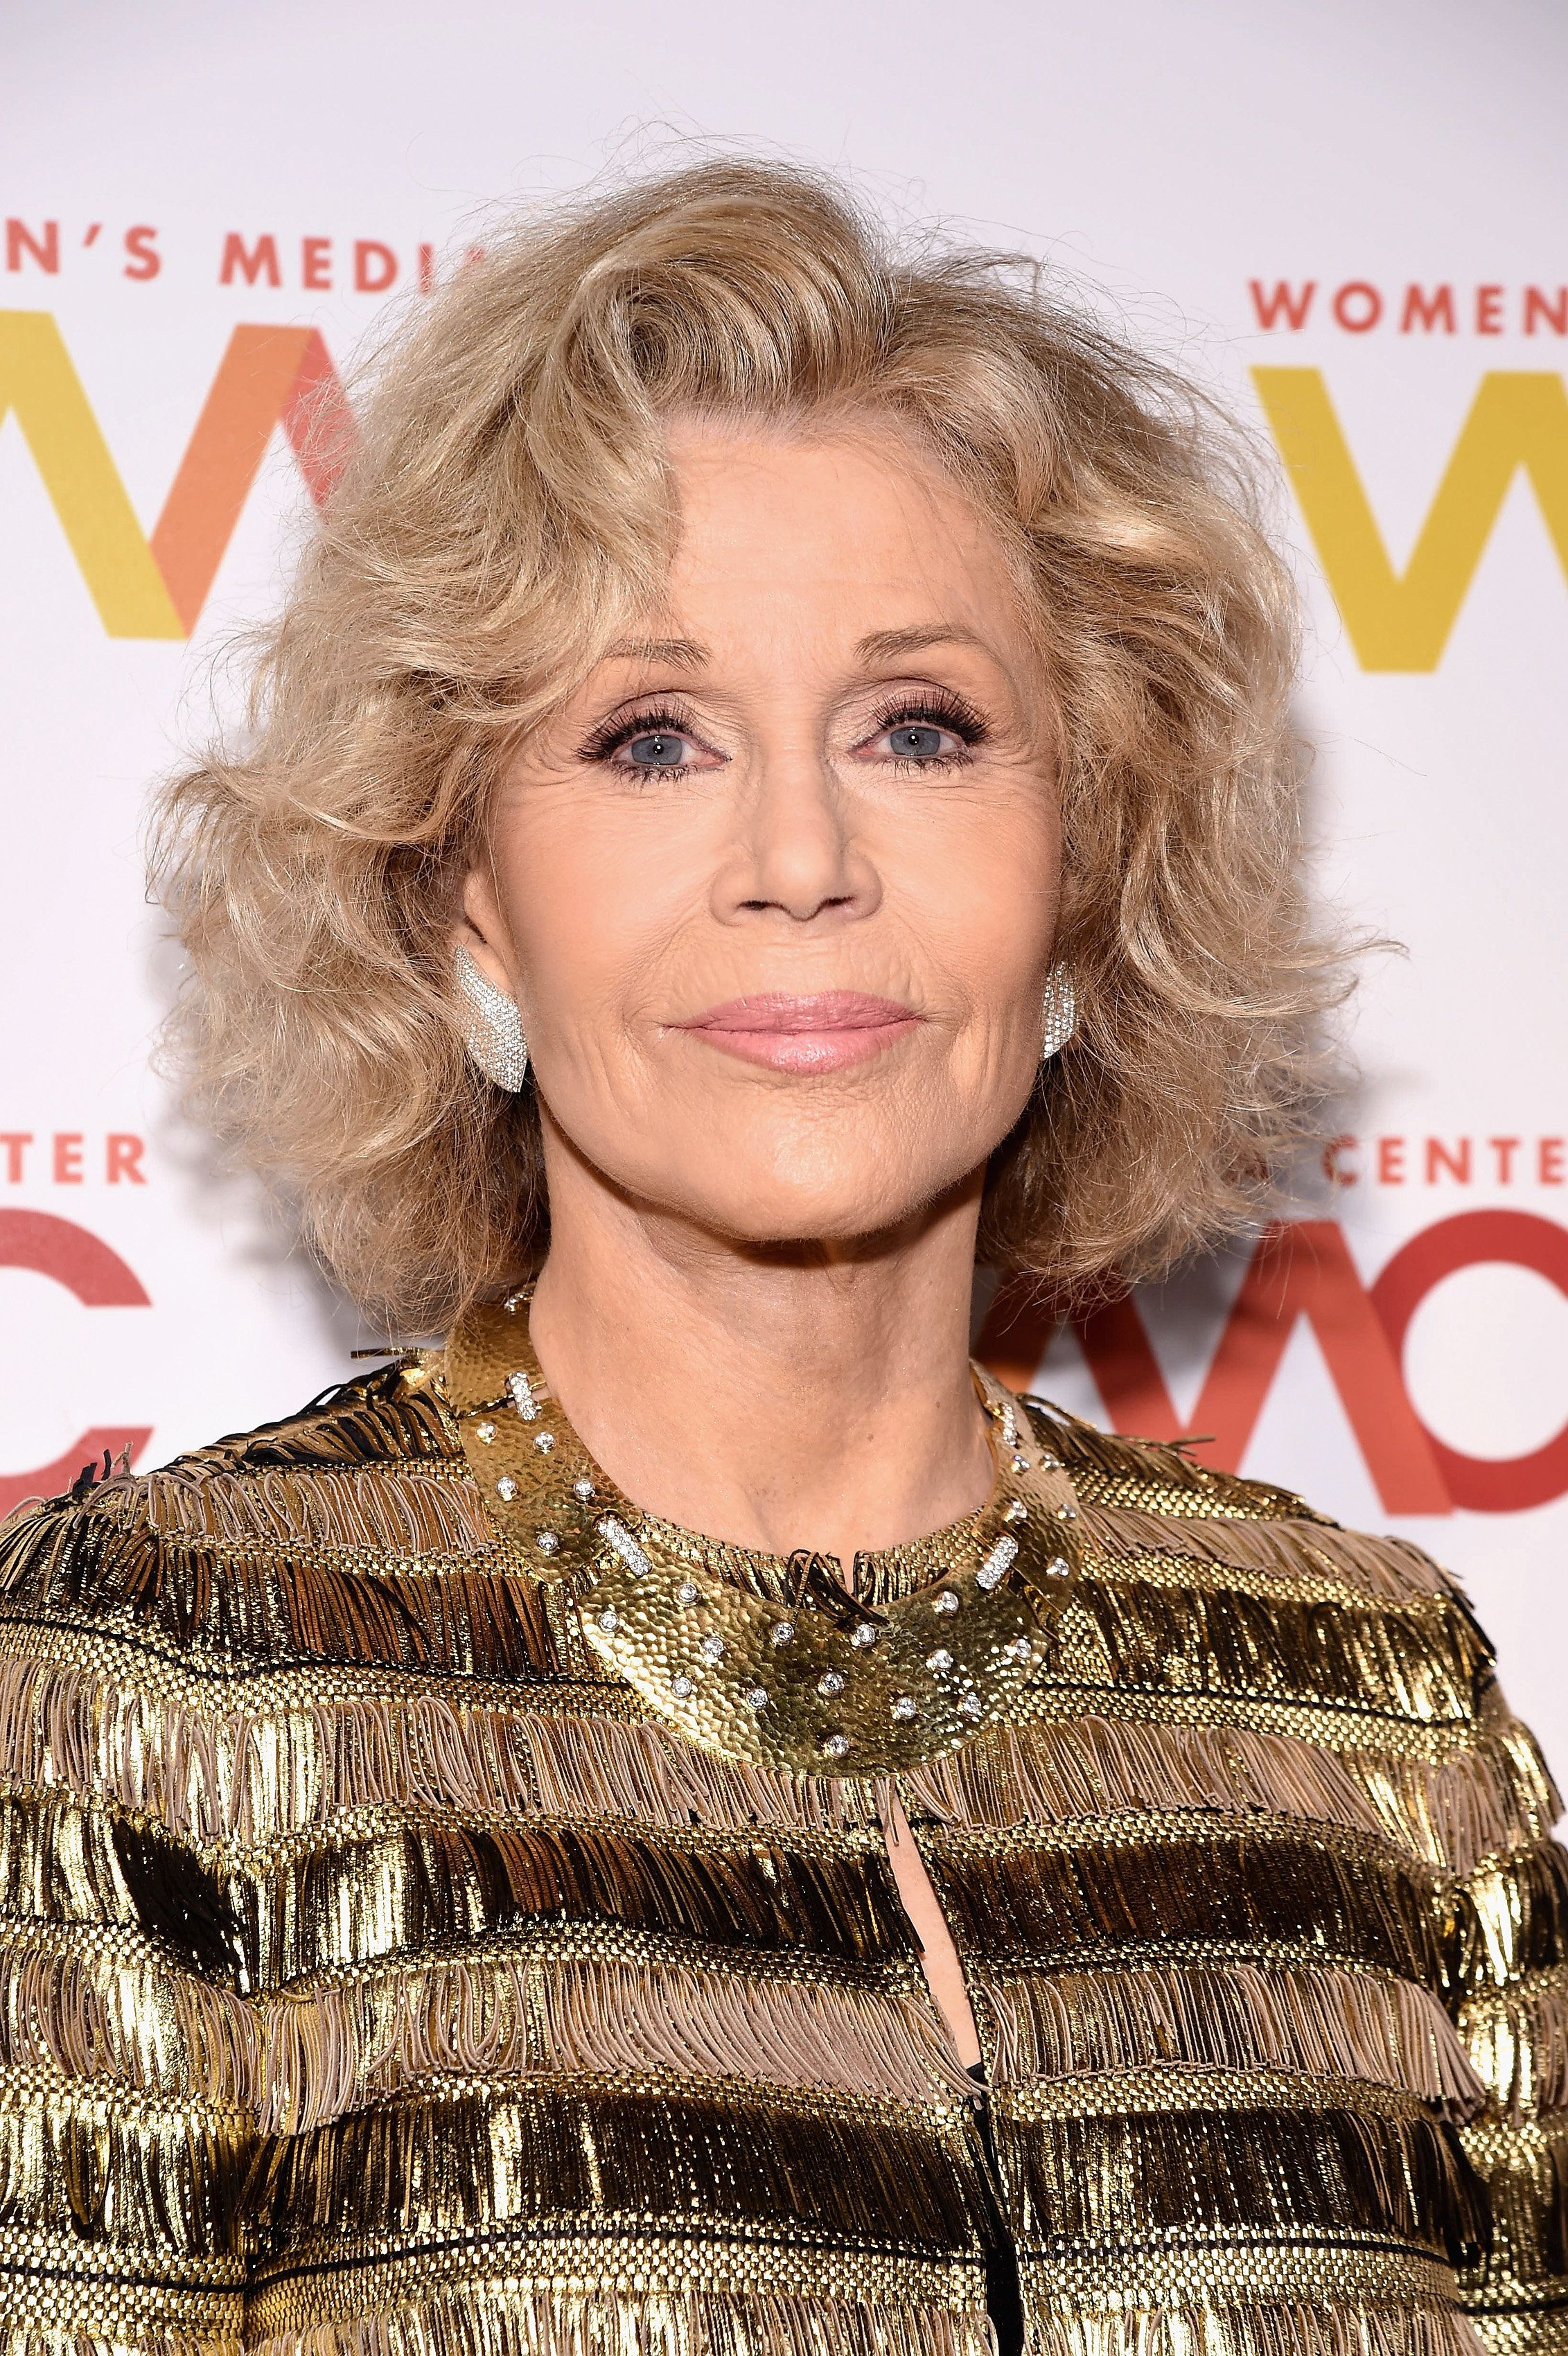 Talking to reporters at the Women's Media Awards, Jane Fonda said that U.S. democracy is